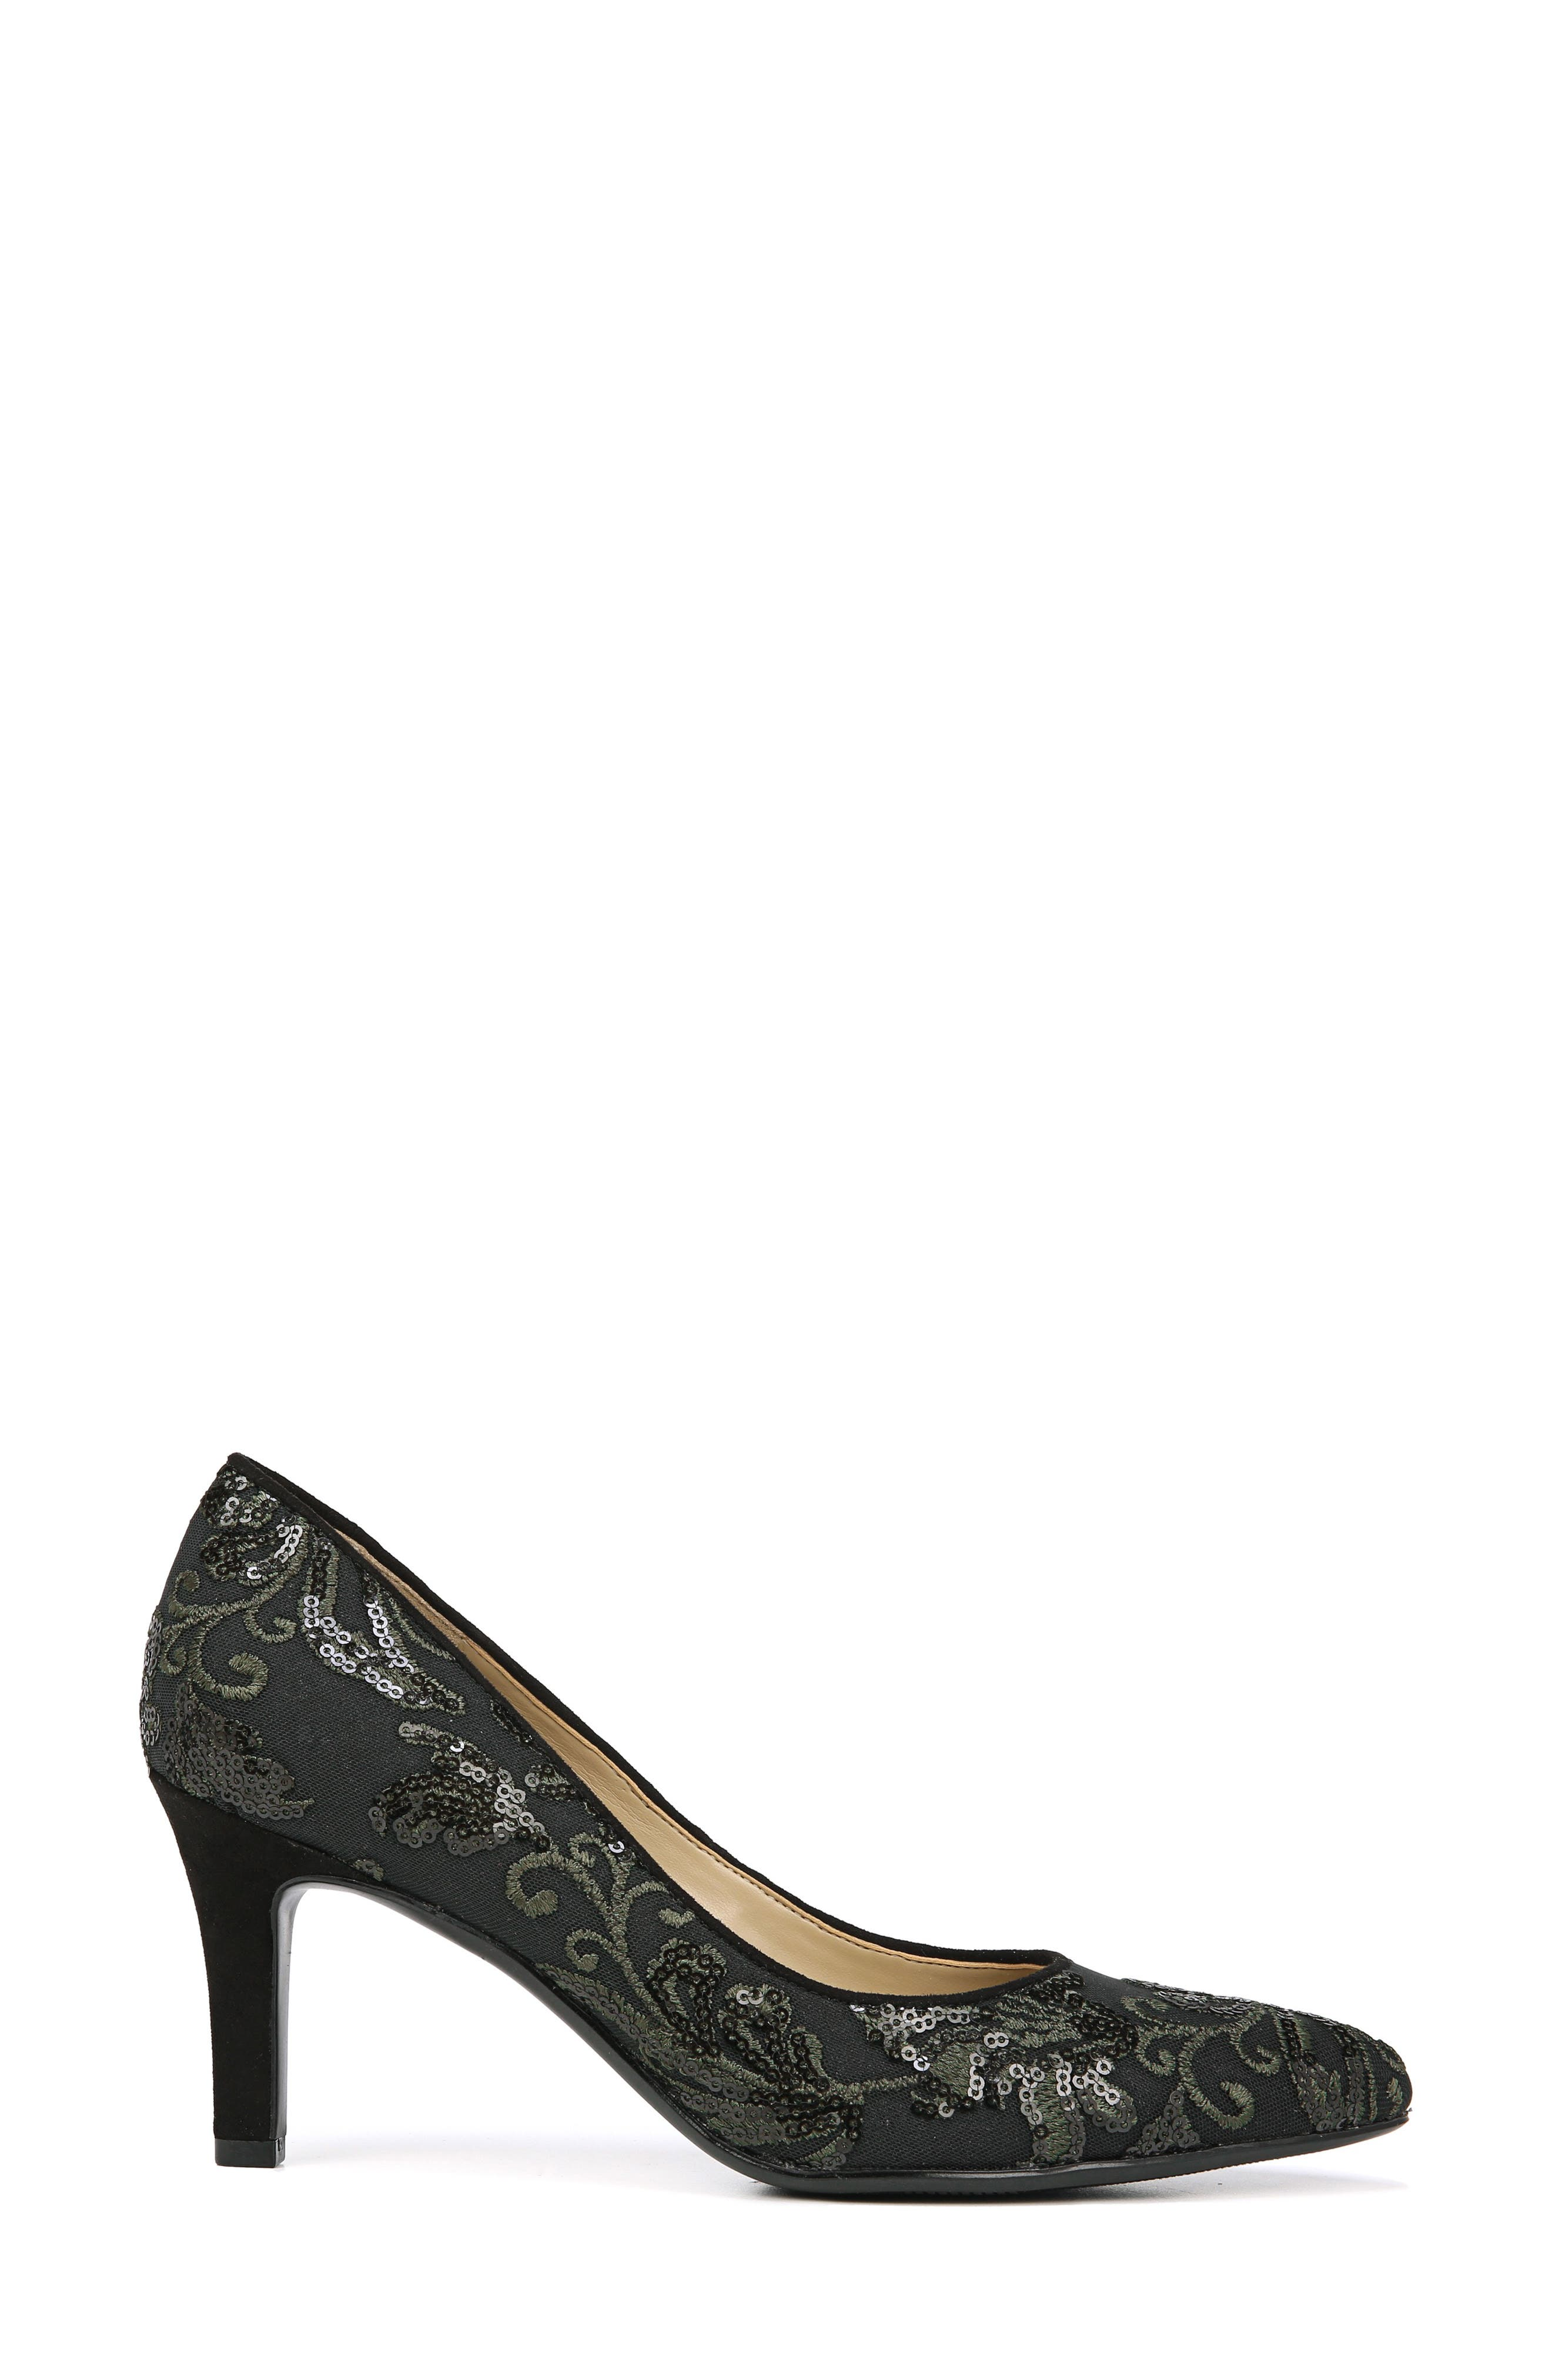 NATURALIZER, Natalie Pointy Toe Pump, Alternate thumbnail 3, color, FERN GREEN EMBROIDERED